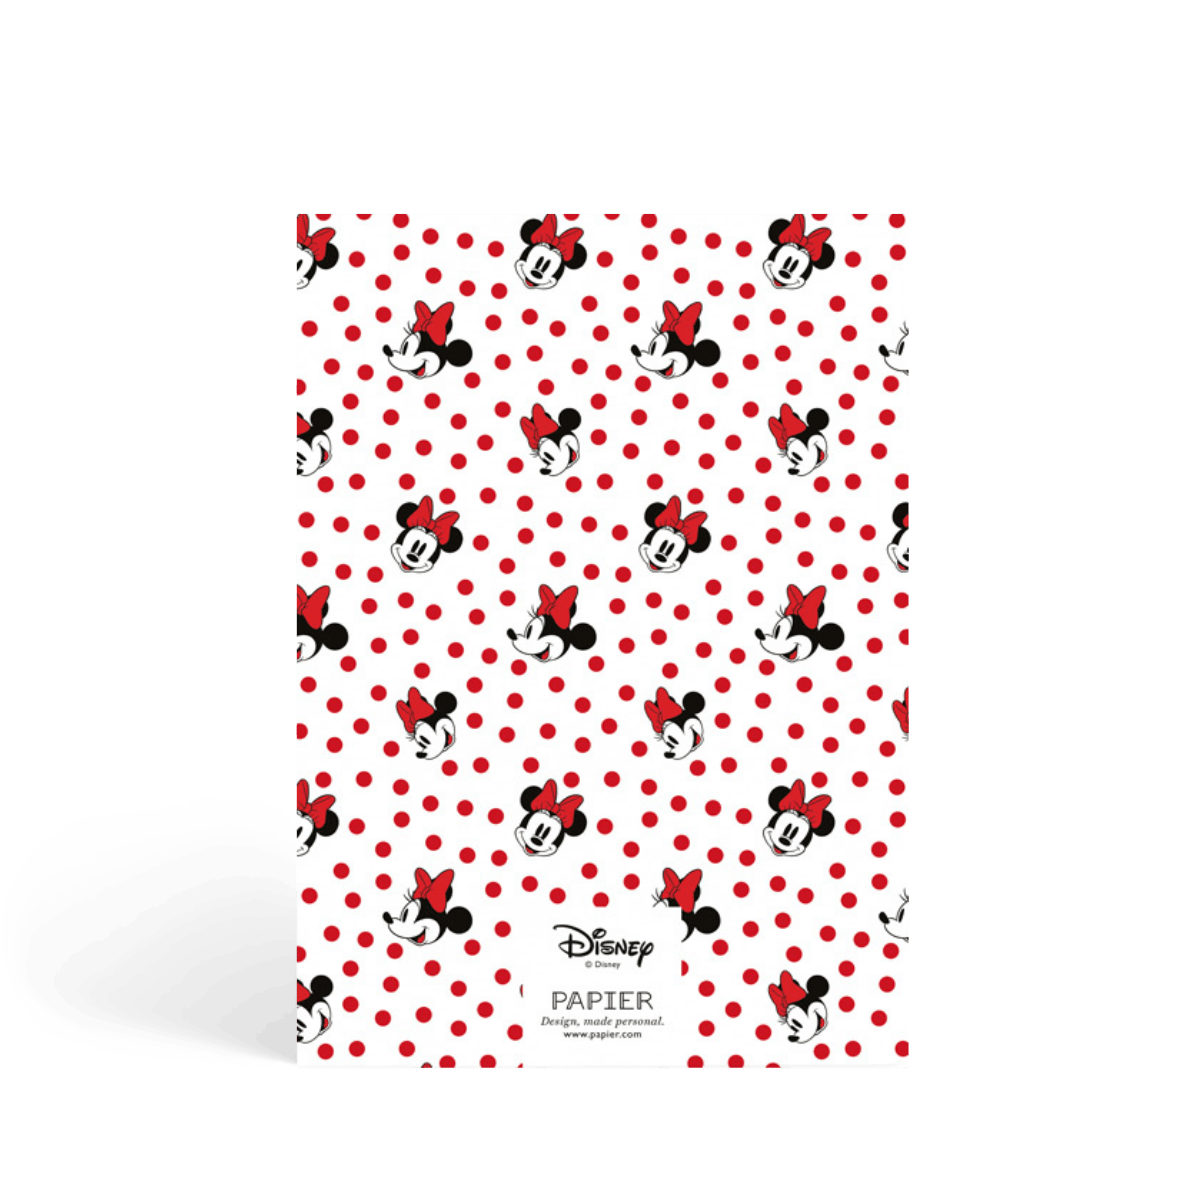 Https%3a%2f%2fwww.papier.com%2fproduct image%2f64844%2f5%2fminnie mouse 15255 rueckseite 1549050517.png?ixlib=rb 1.1